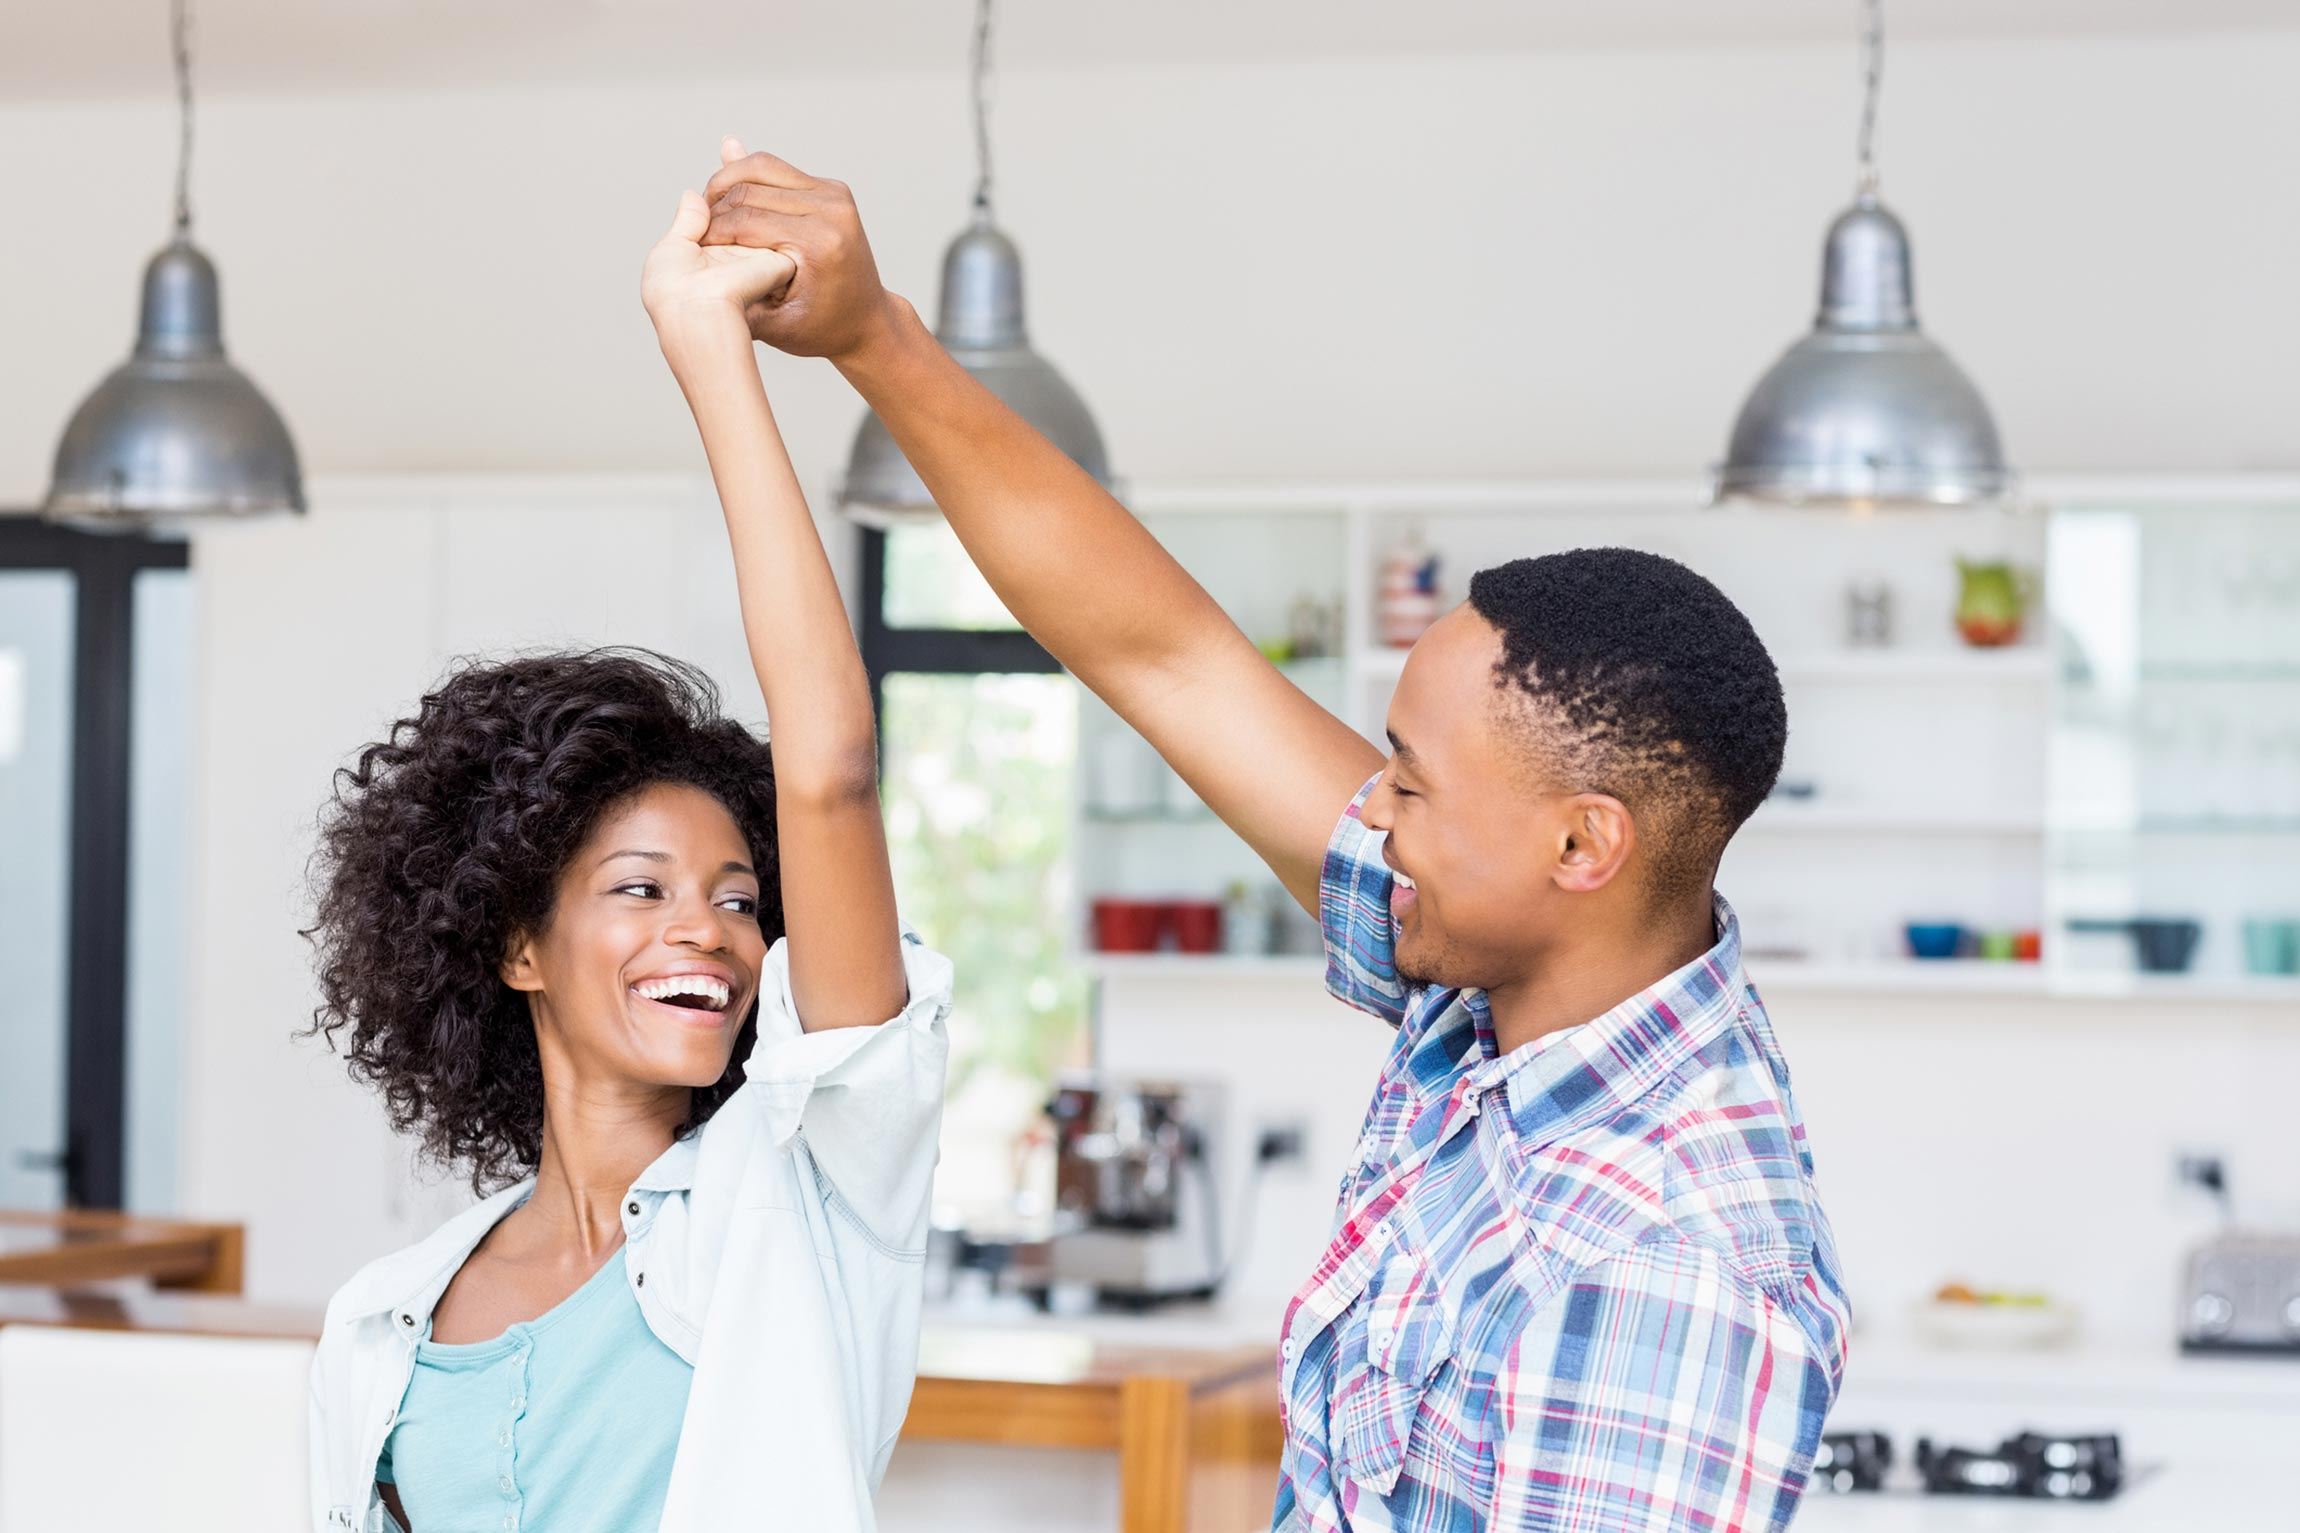 African American couple dancing in kitchen